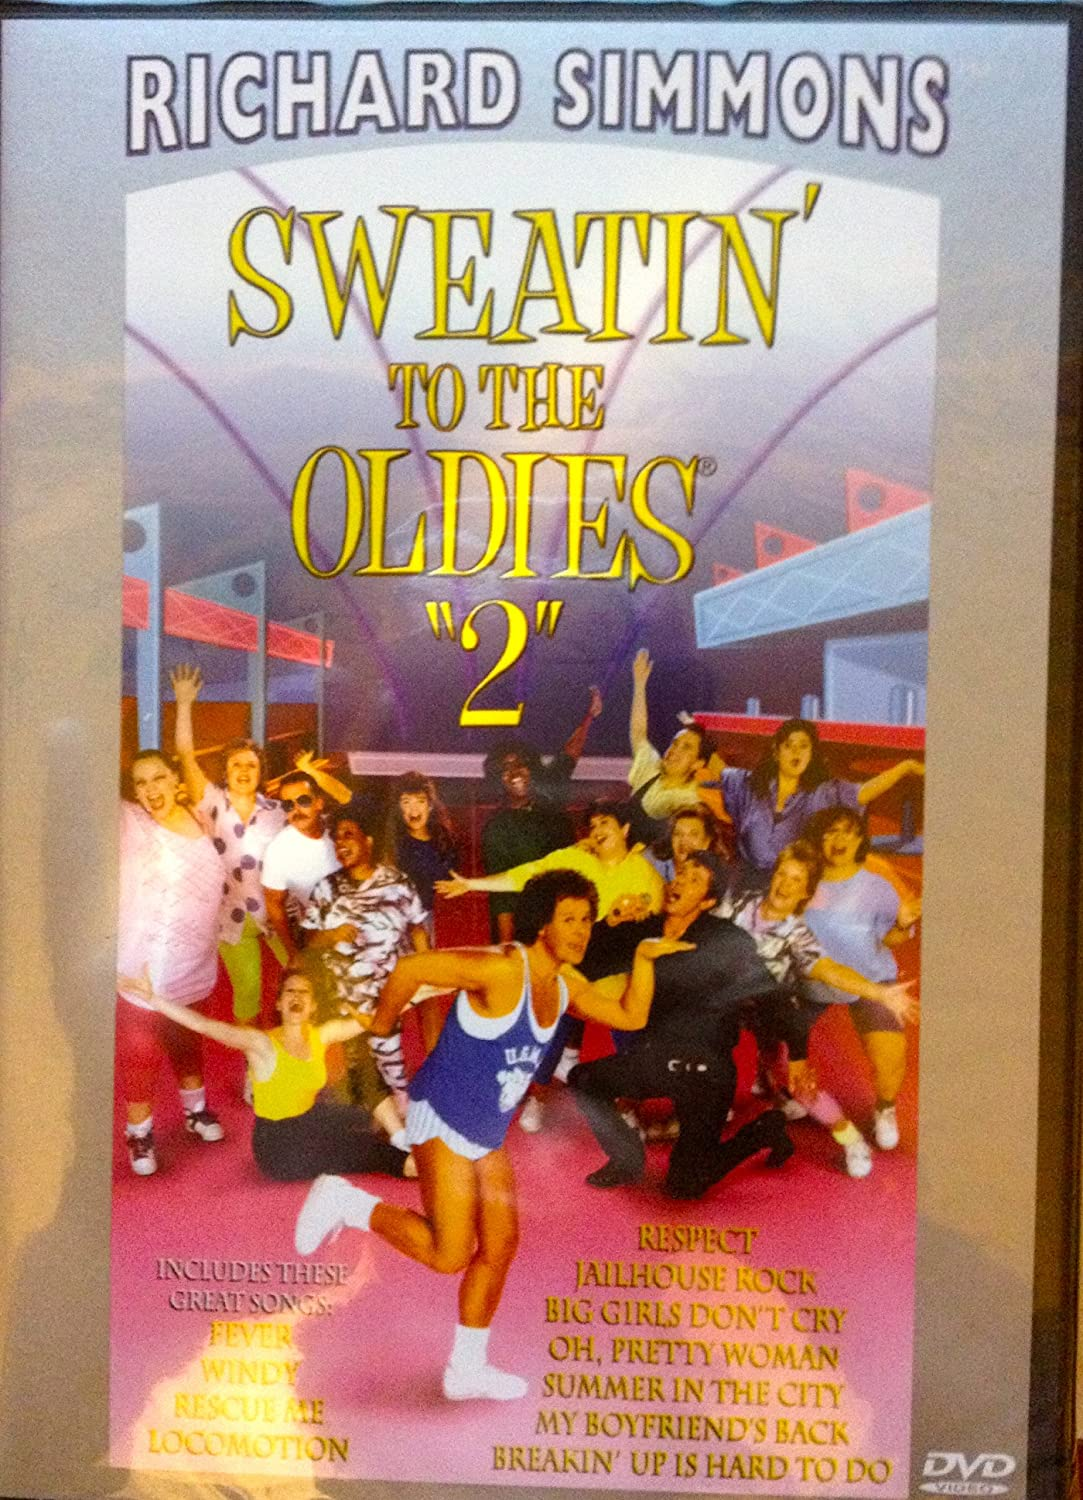 richard simmons sweatin to the oldies vhs. richard simmons sweatin to the oldies vhs